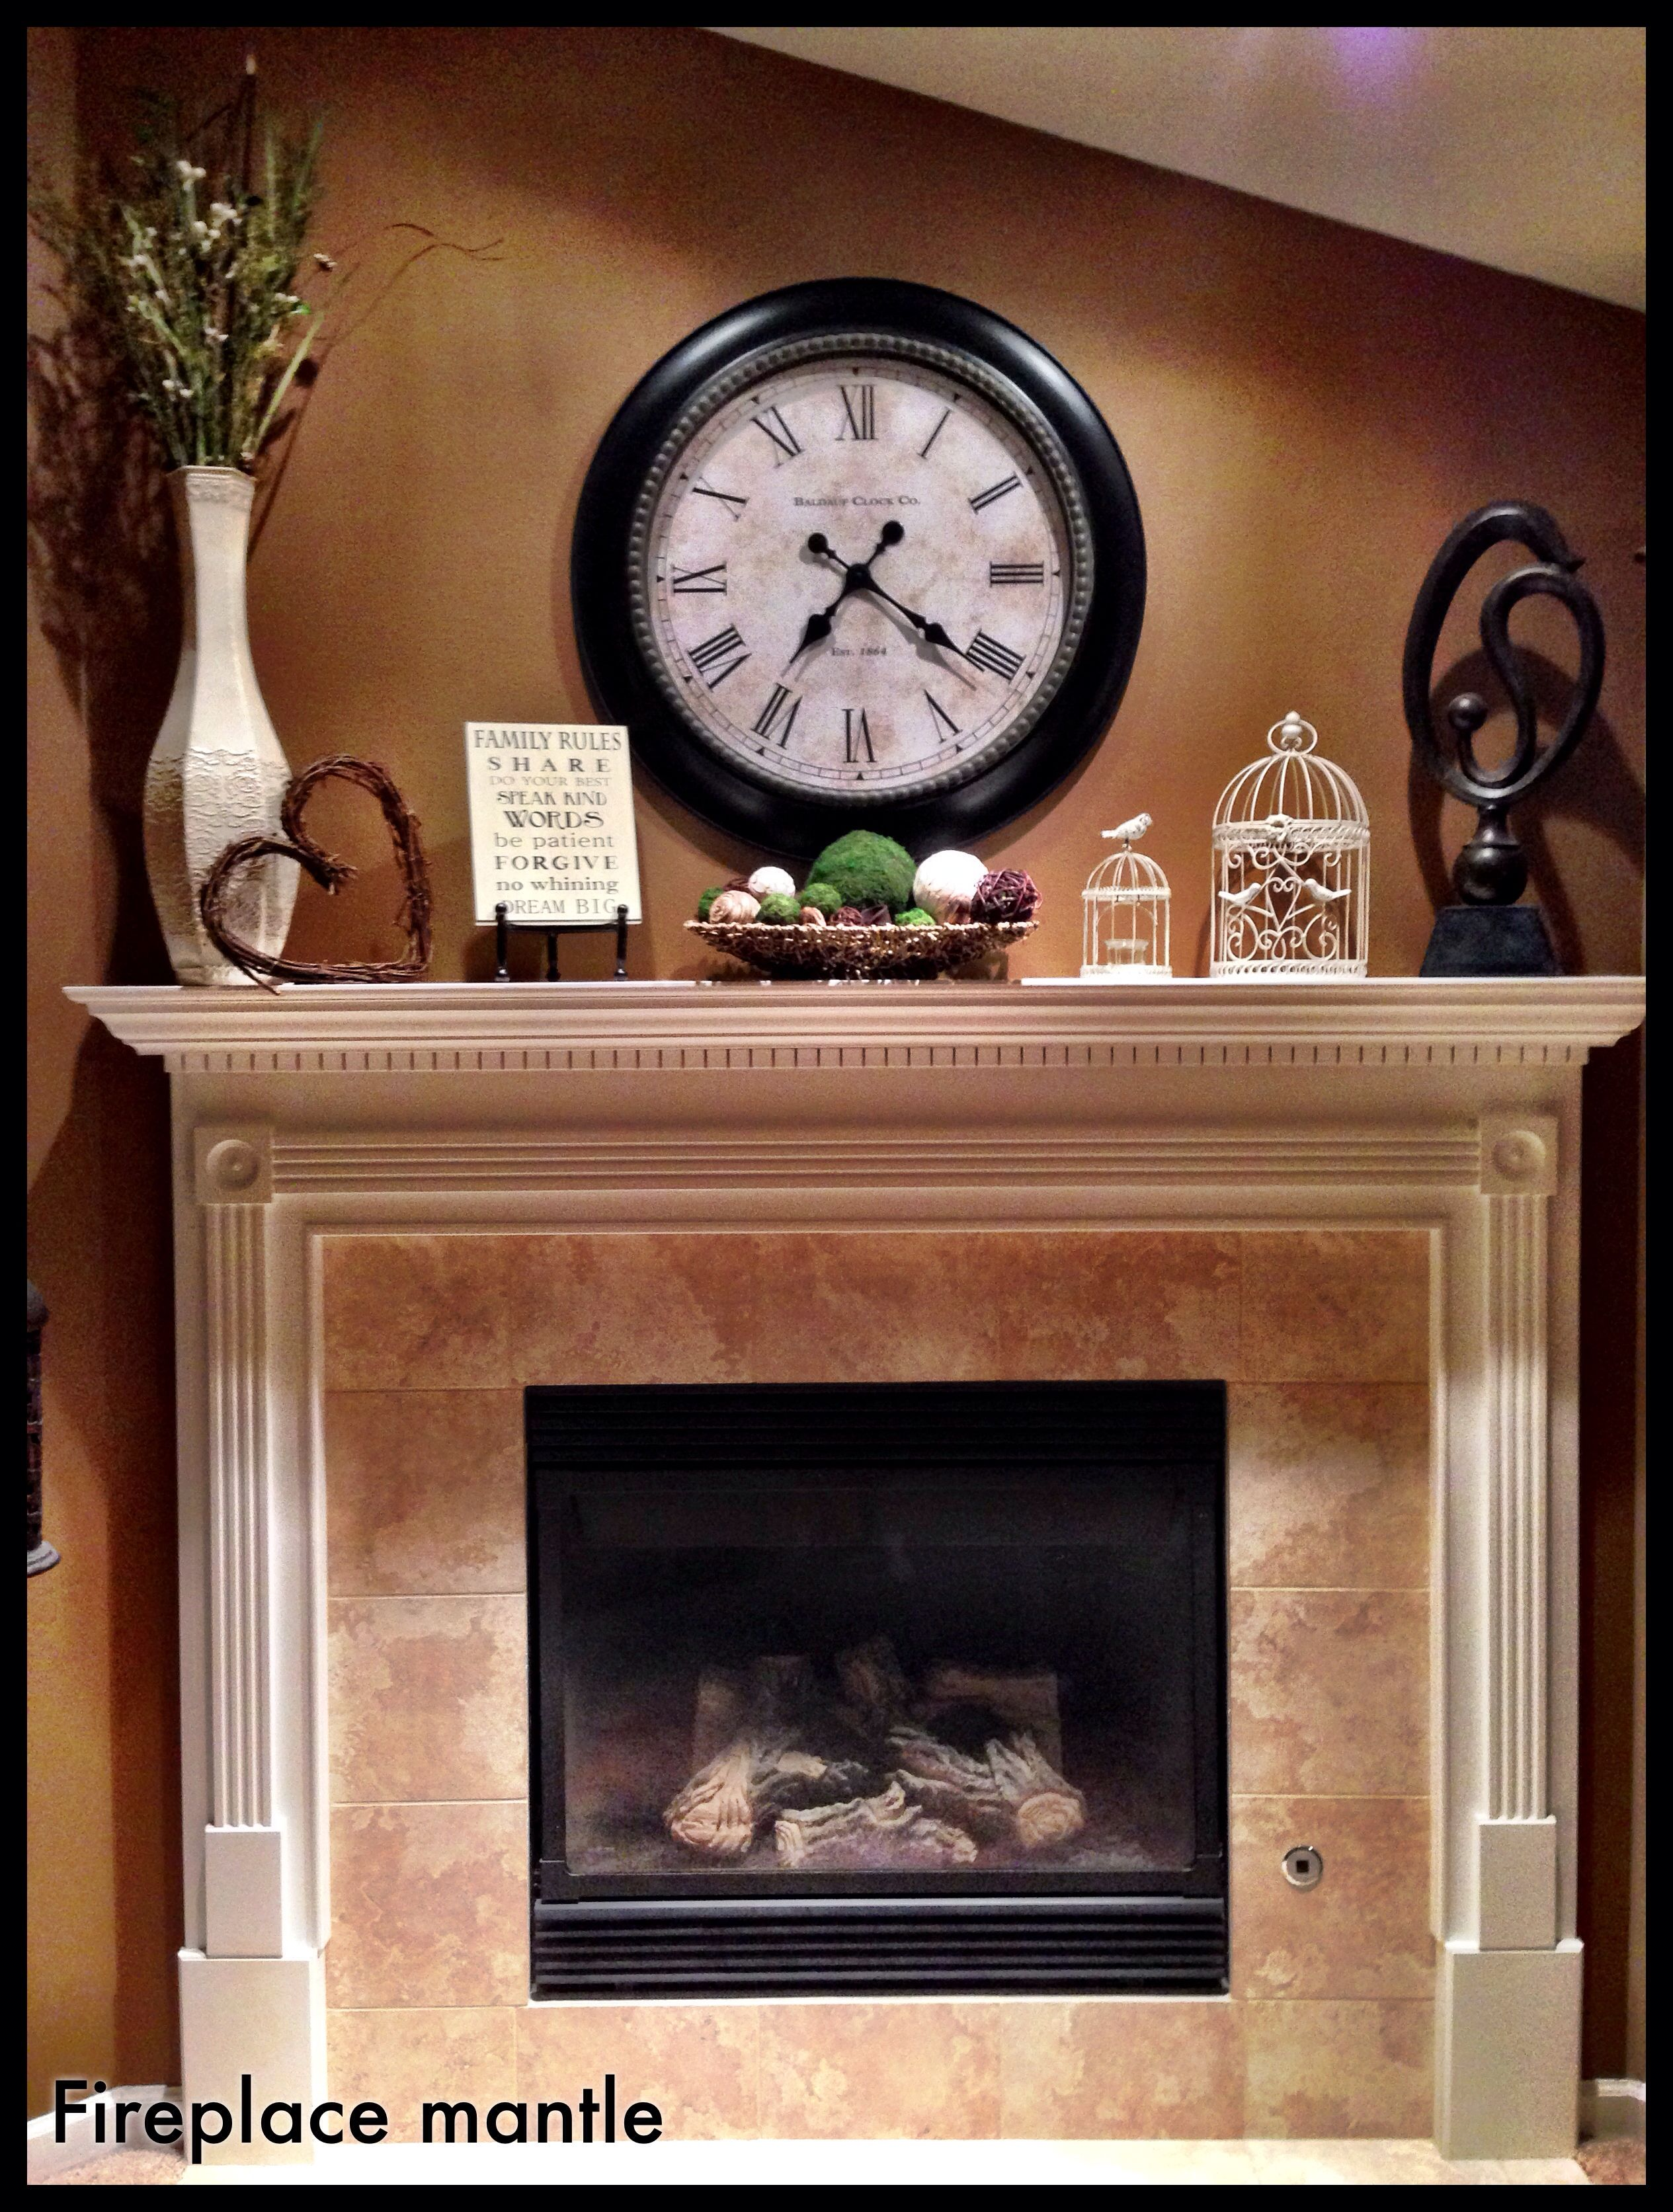 Fireplace Mantle Decorating Fireplace Mantle Decor Fireplace Mantel Decor Mantle Decor